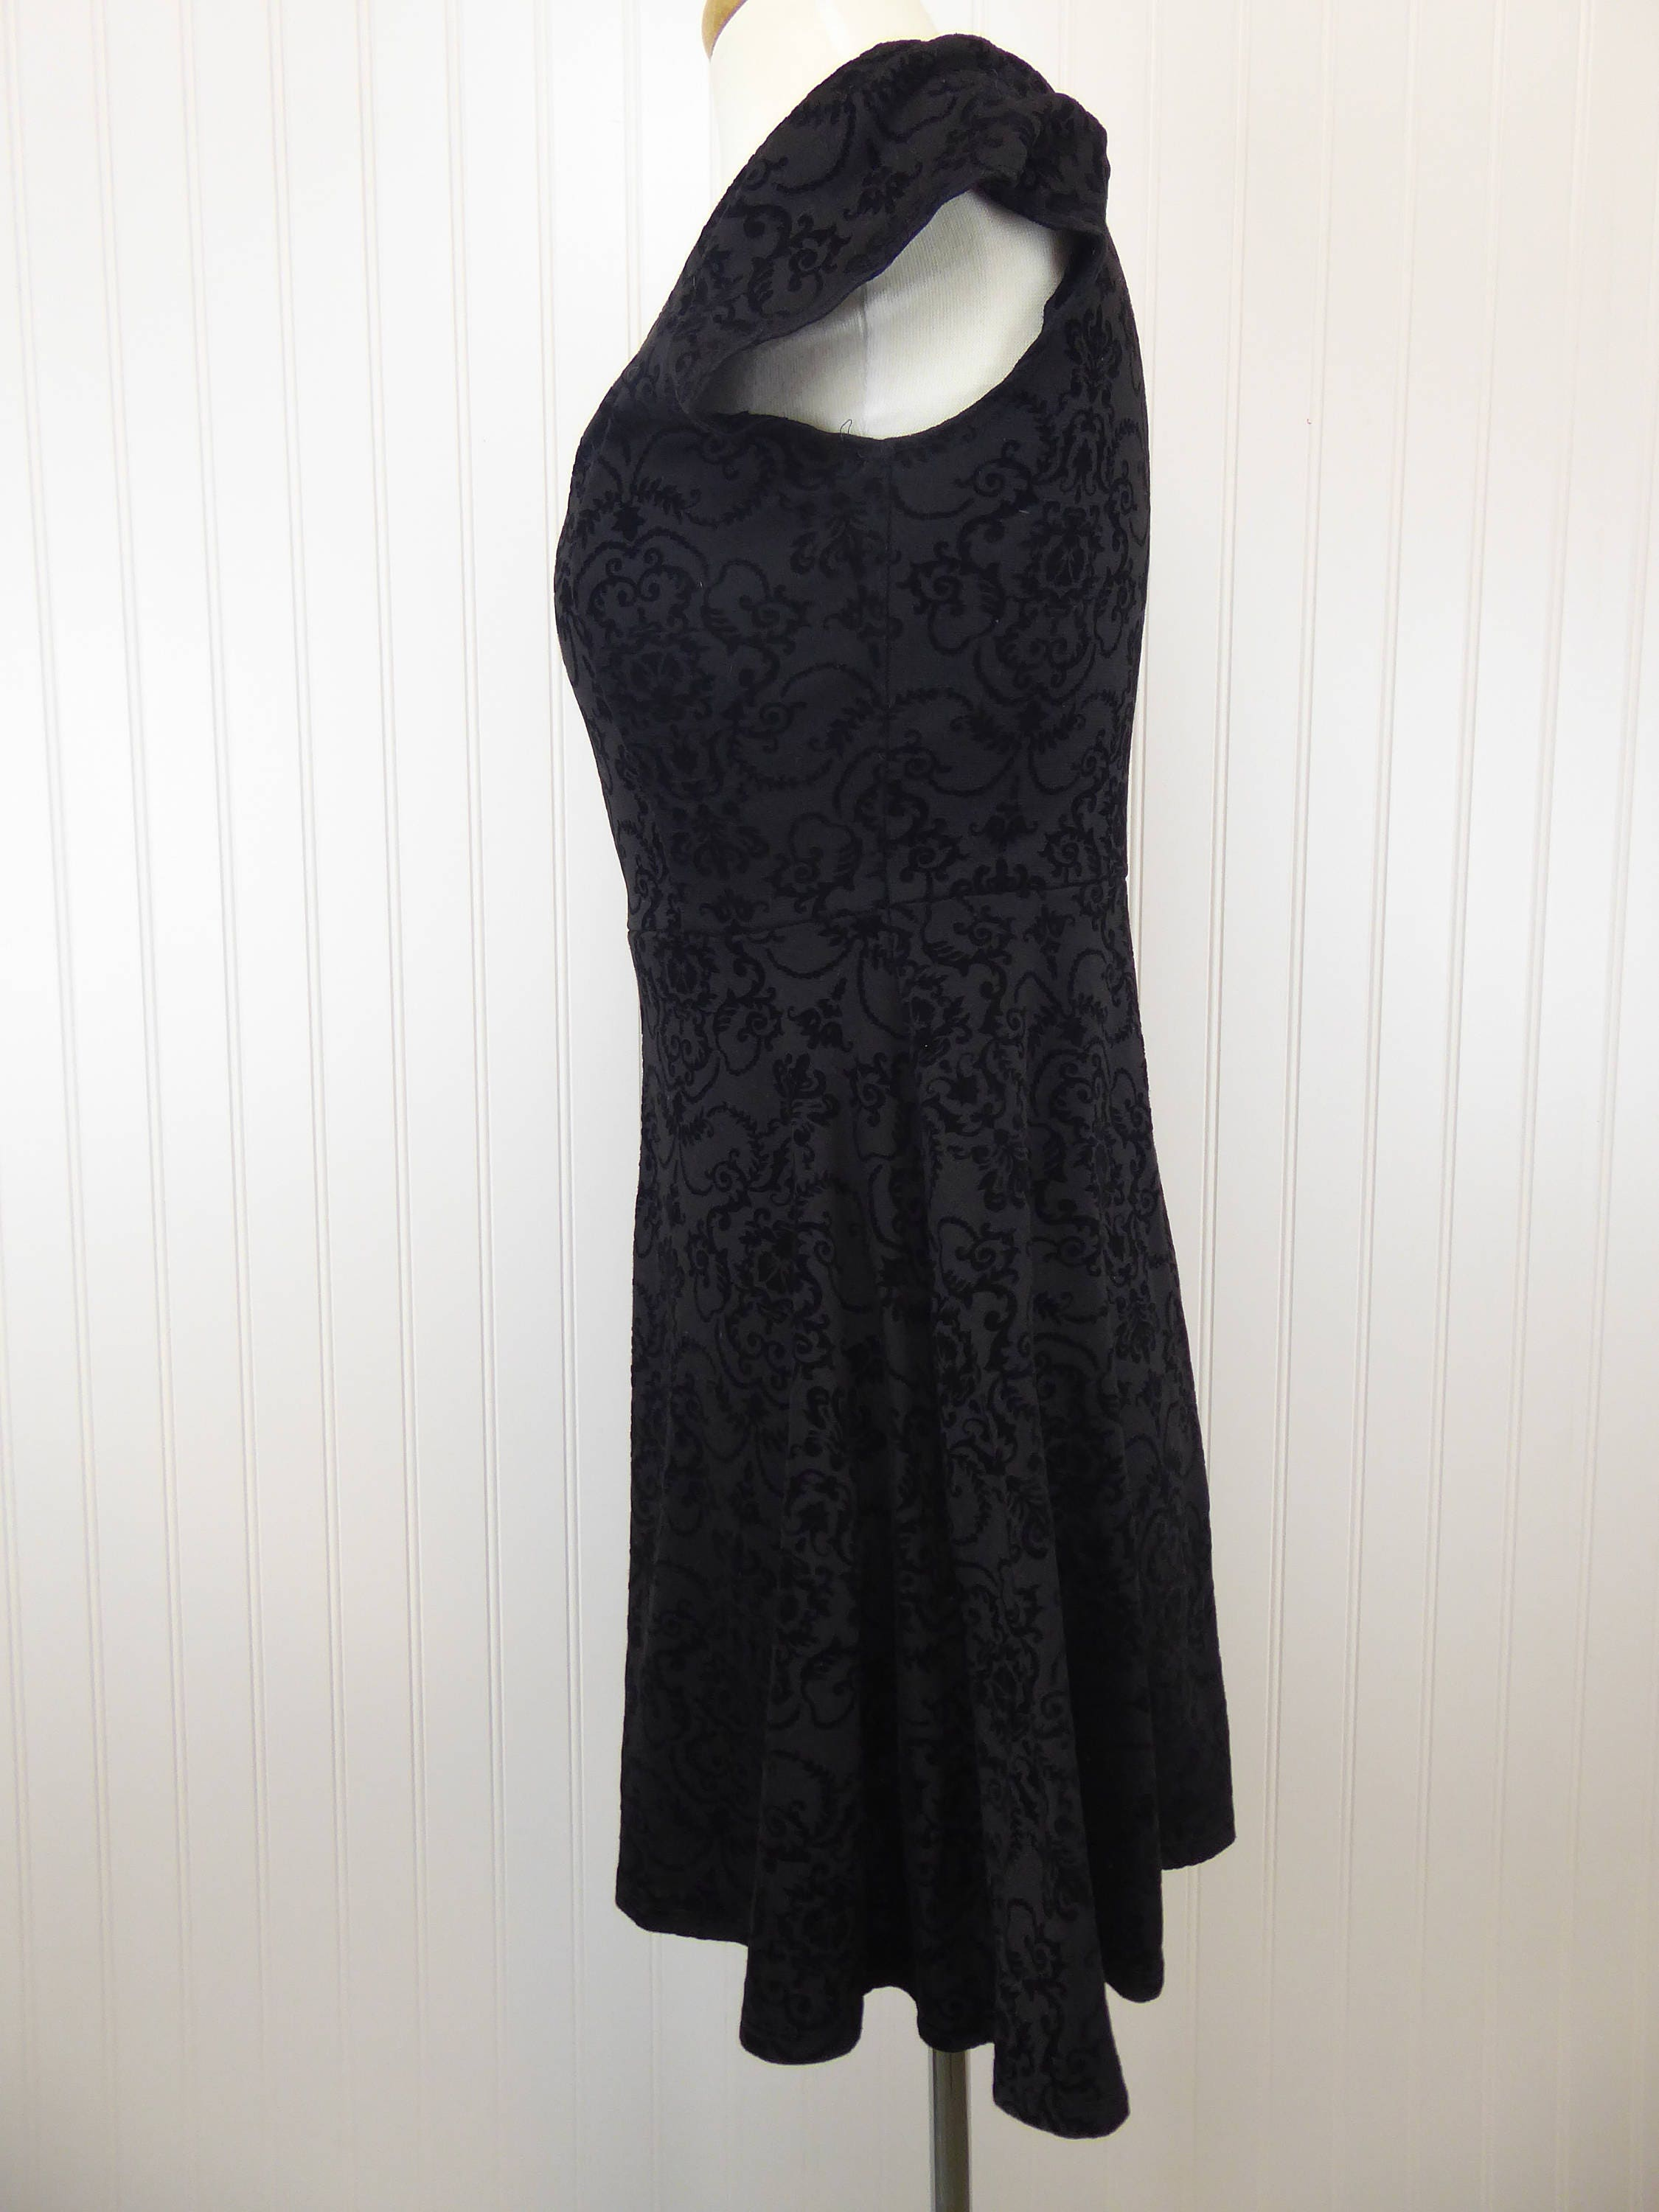 90s Black Burnout Velvet Filigree Pattern Vintage Dress